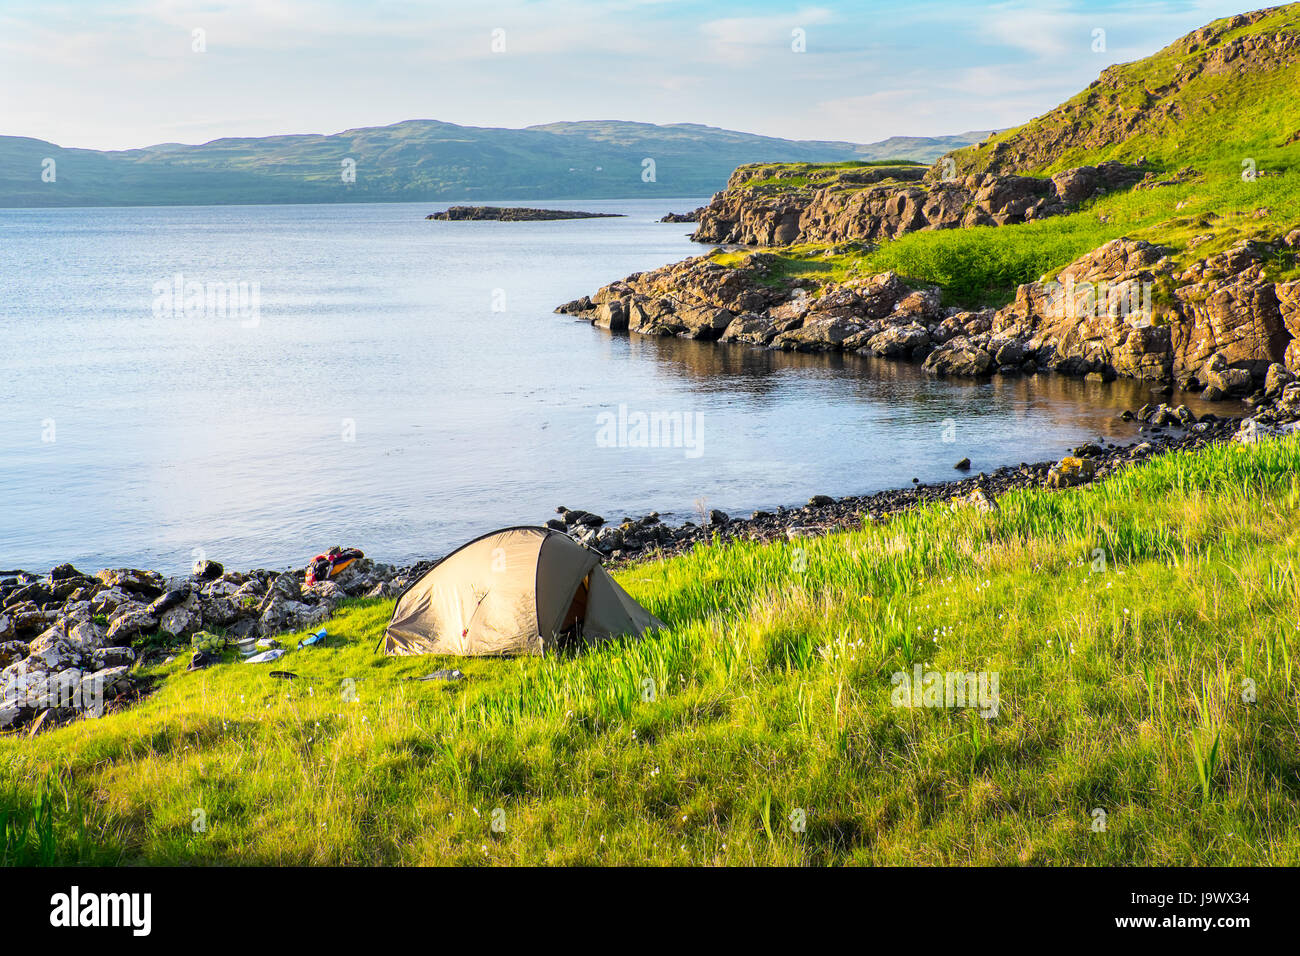 Wild camping whilst sea kayaking on the island of Ulva on the west coast of Mull in the Scottish Hebrides - Stock Image